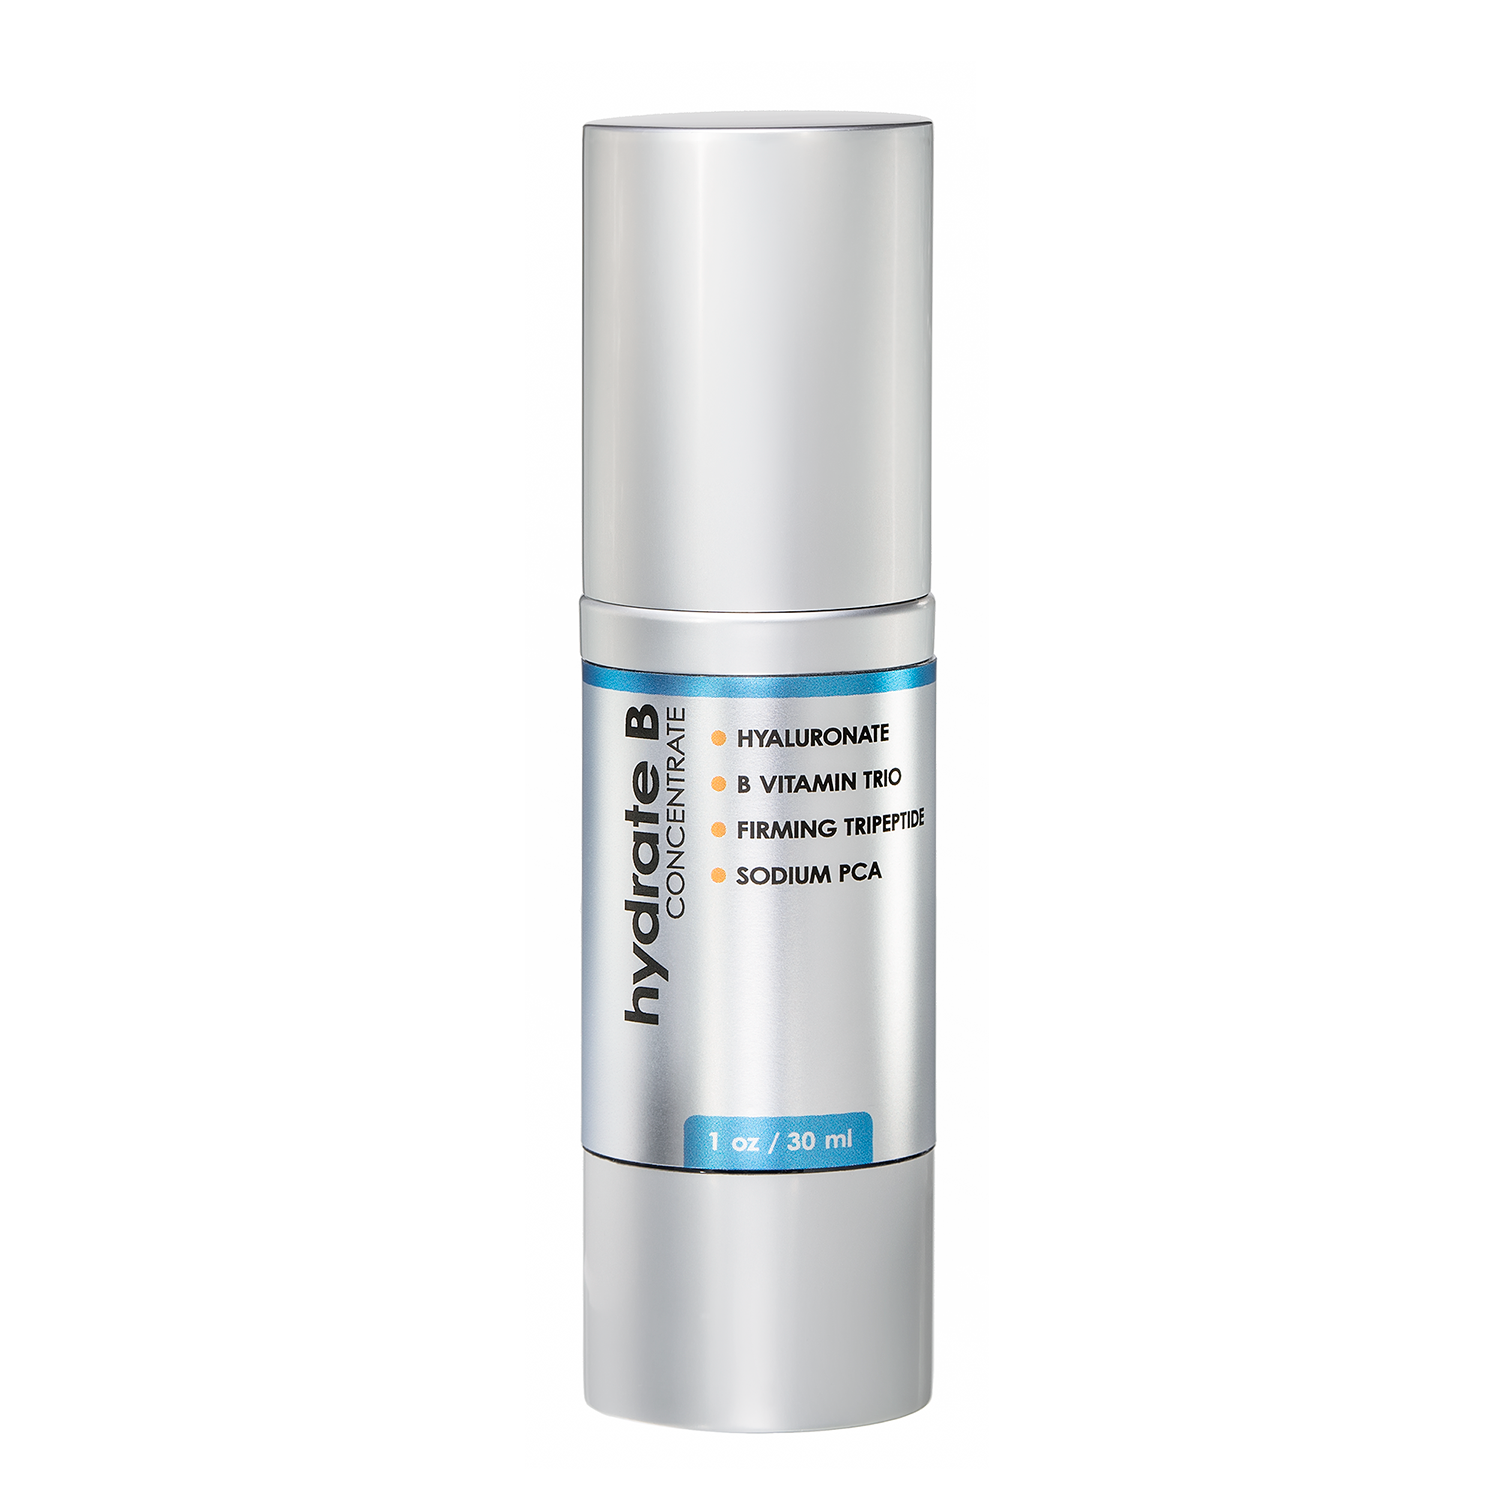 YBF Hydrate B Concentrate - Great for all skin types